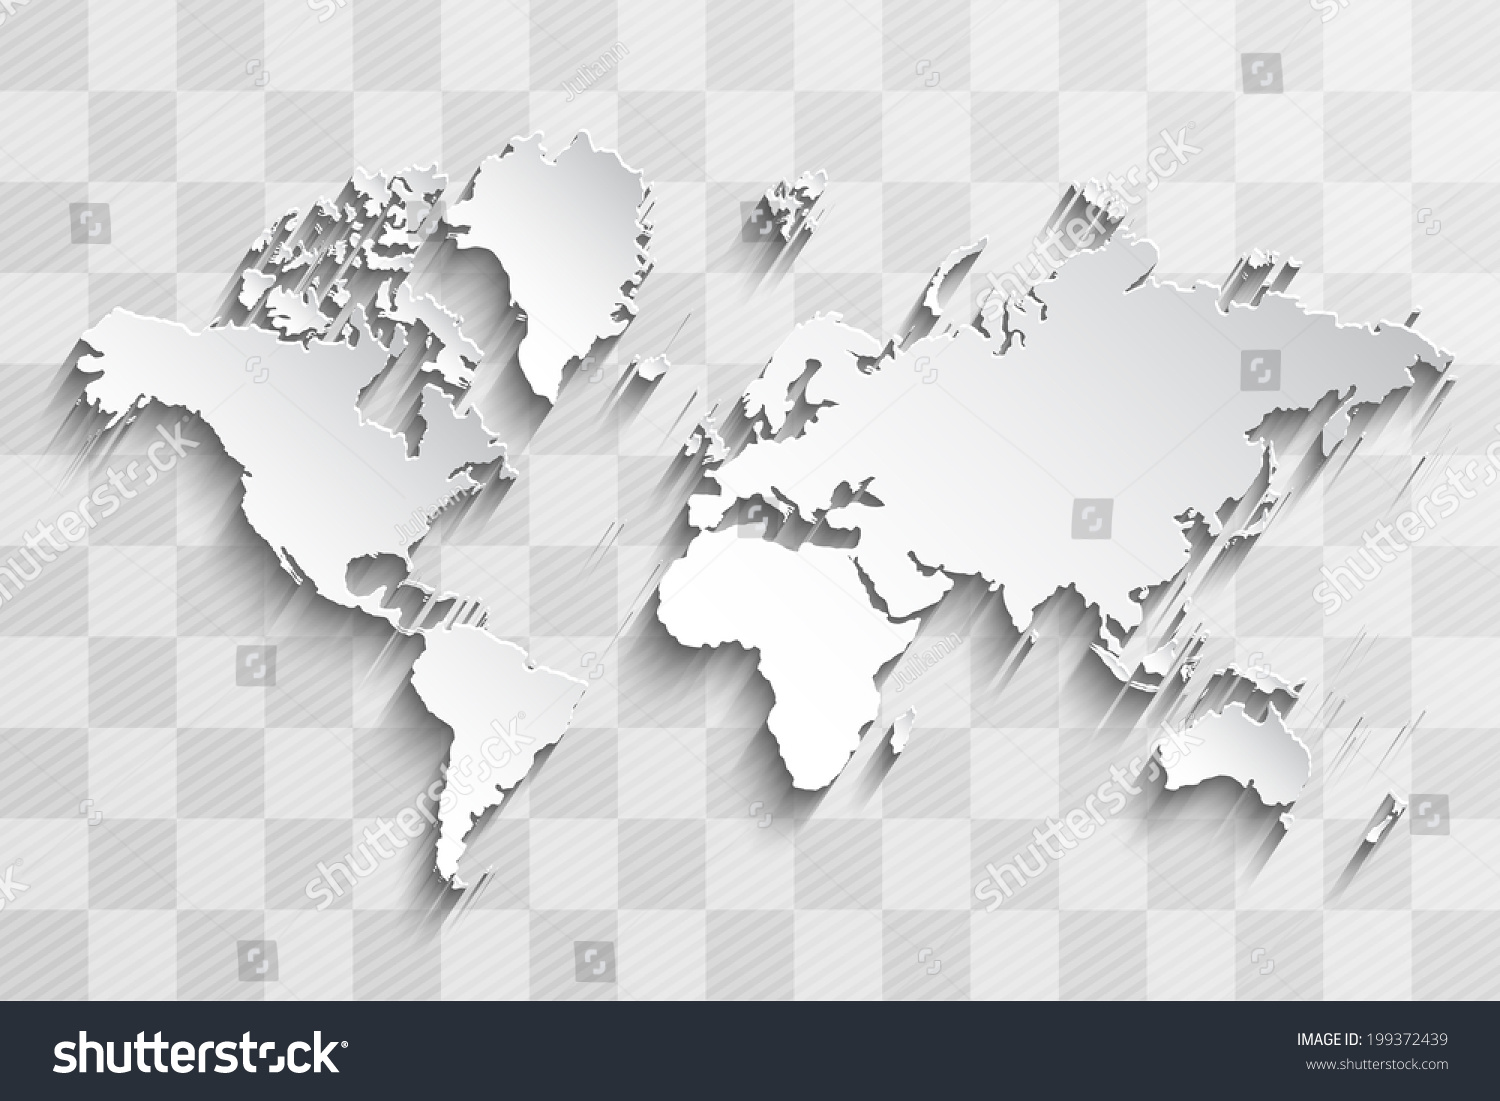 Image vector world map on chess stock vector 199372439 shutterstock image of a vector world map on a chess board gumiabroncs Choice Image